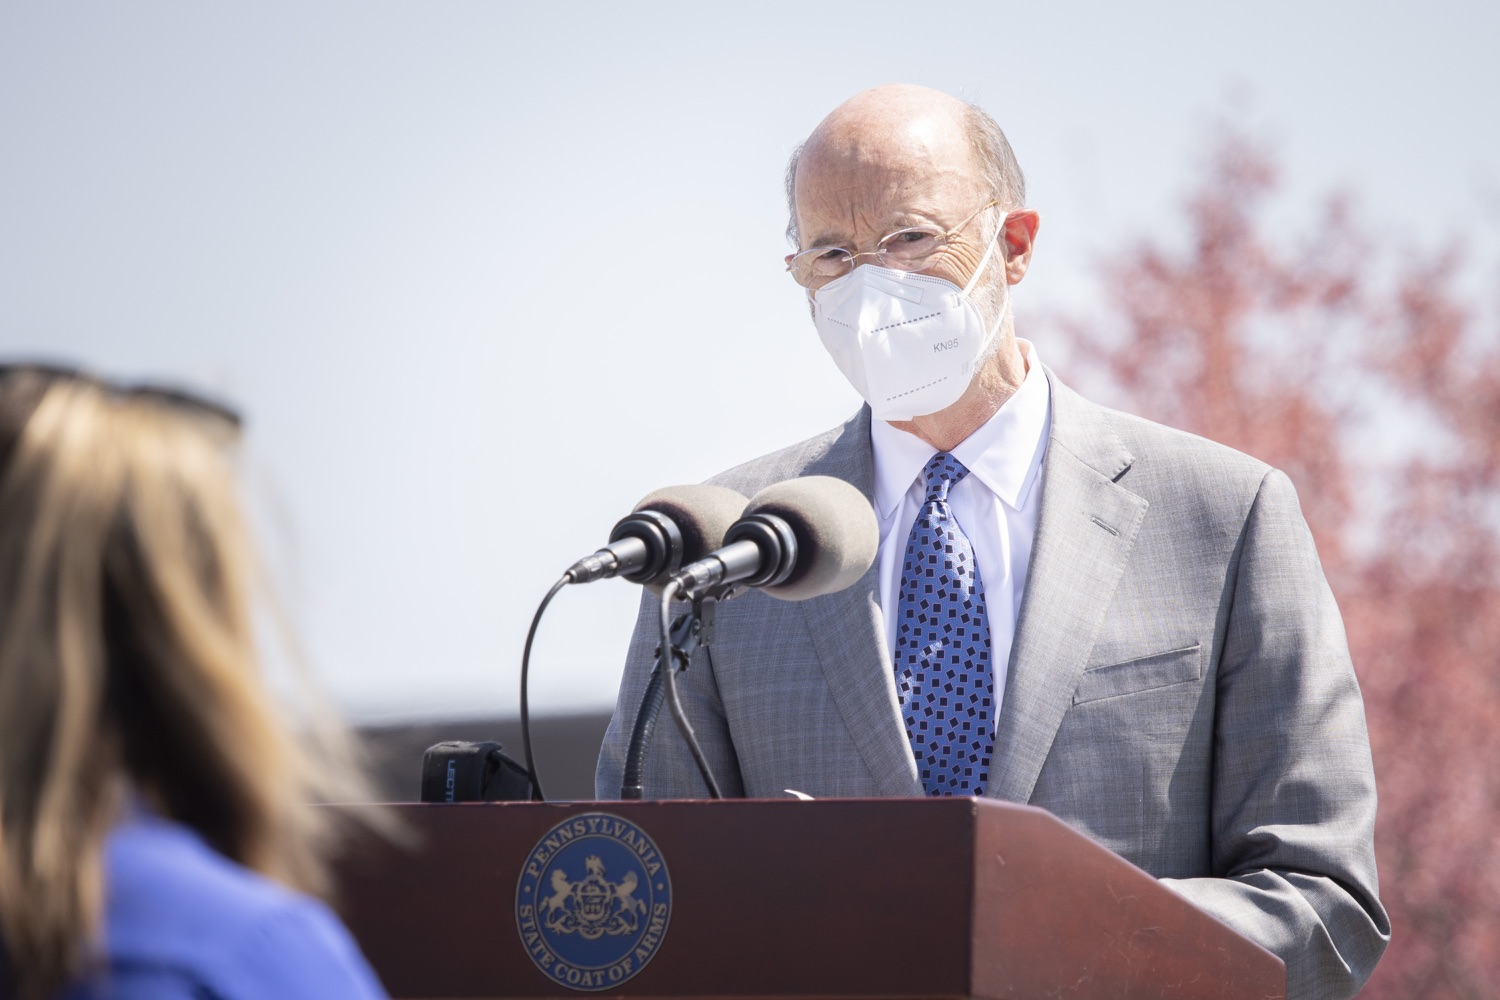 """<a href=""""https://filesource.wostreaming.net/commonwealthofpa/photo/18654_gov_vaccineeligibility_dz_019.jpg"""" target=""""_blank"""">⇣Download Photo<br></a>Pennsylvania Governor Tom Wolf speaking to the press.  Gov. Tom Wolf visited Weis Markets in Enola, Cumberland County, to recognize the heroic efforts of Pennsylvania's grocery store workers, who are now eligible for the COVID-19 vaccine.  The governor expressed his gratitude to Pennsylvania's 180,000 grocery store workers, who suddenly became frontline workers as the state took critical steps to mitigate the spread of COVID-19. Grocery stores were deemed life-sustaining businesses, and these employees put their lives at risk to ensure their stores remained open to the public. APRIL 06, 2021 - ENOLA, PA.."""